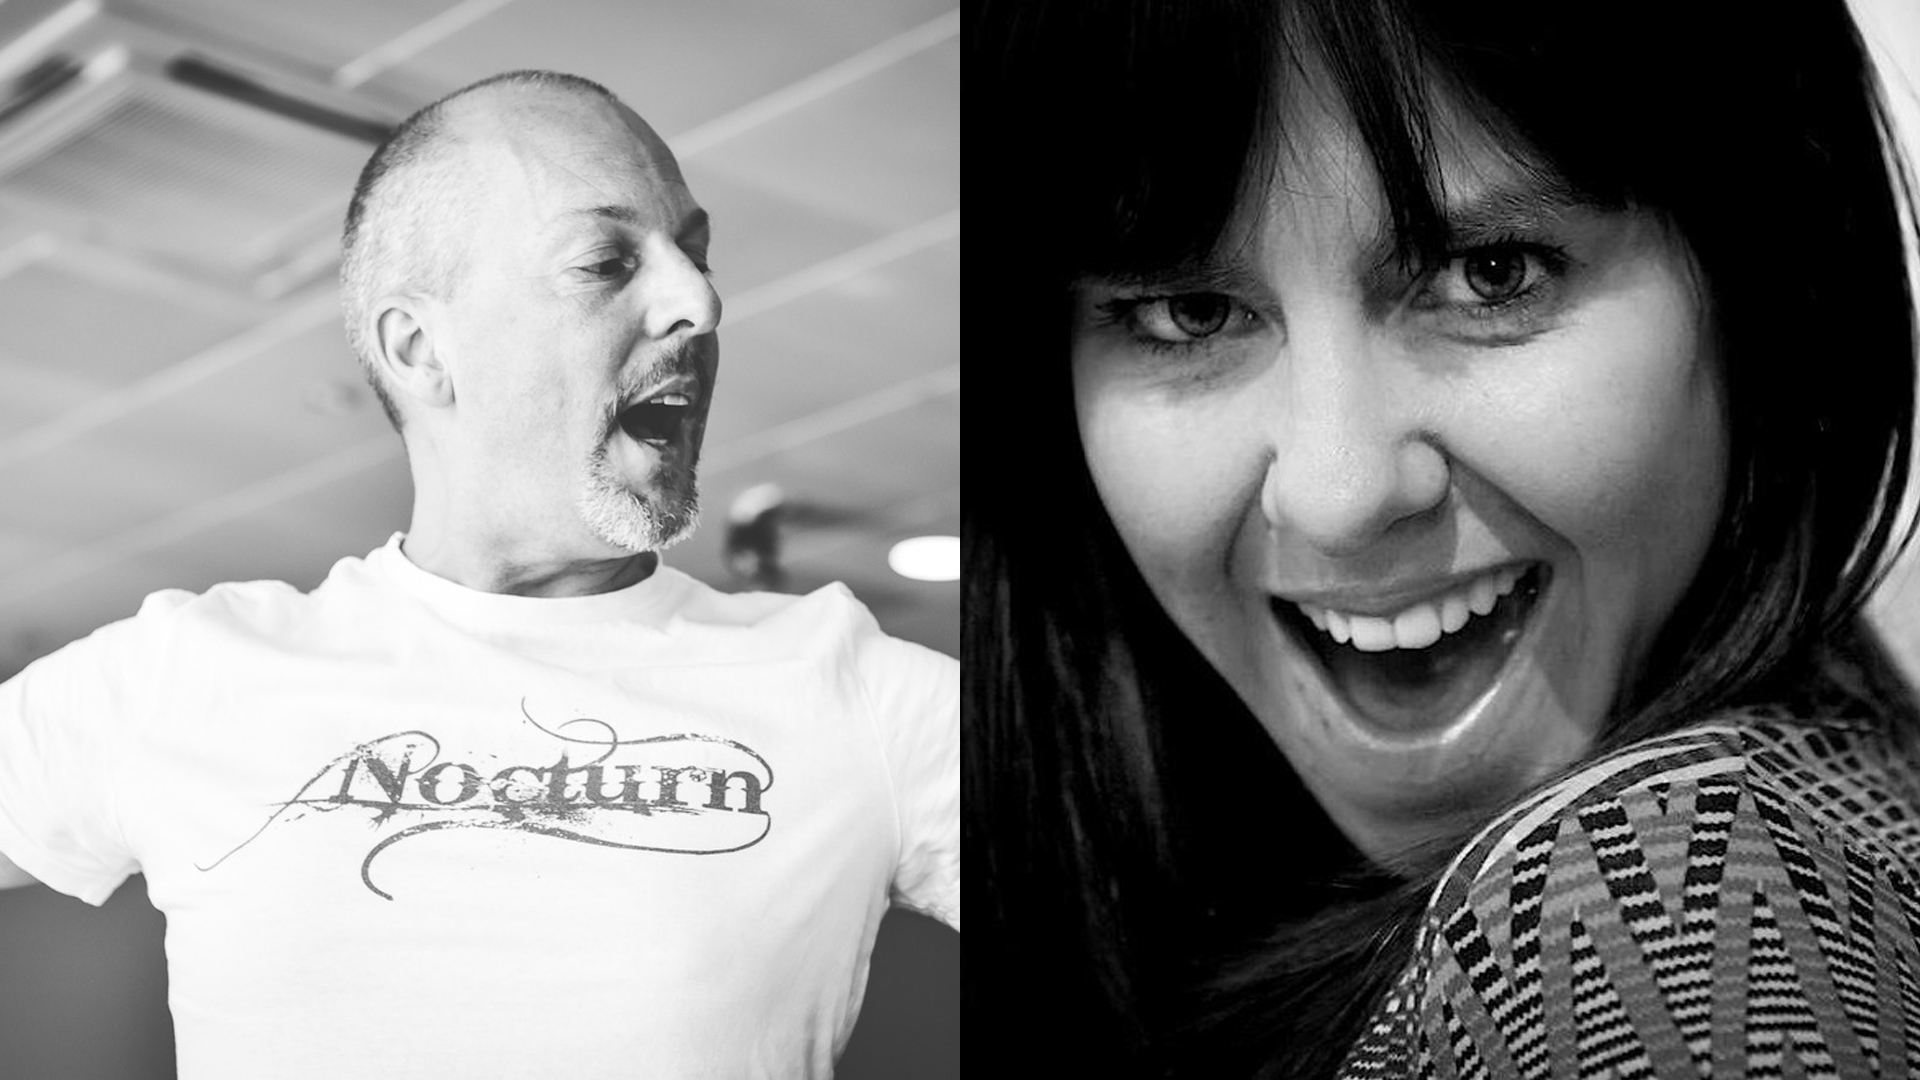 Black and white photos of John Darvell (left) and Sarah Shead (right)